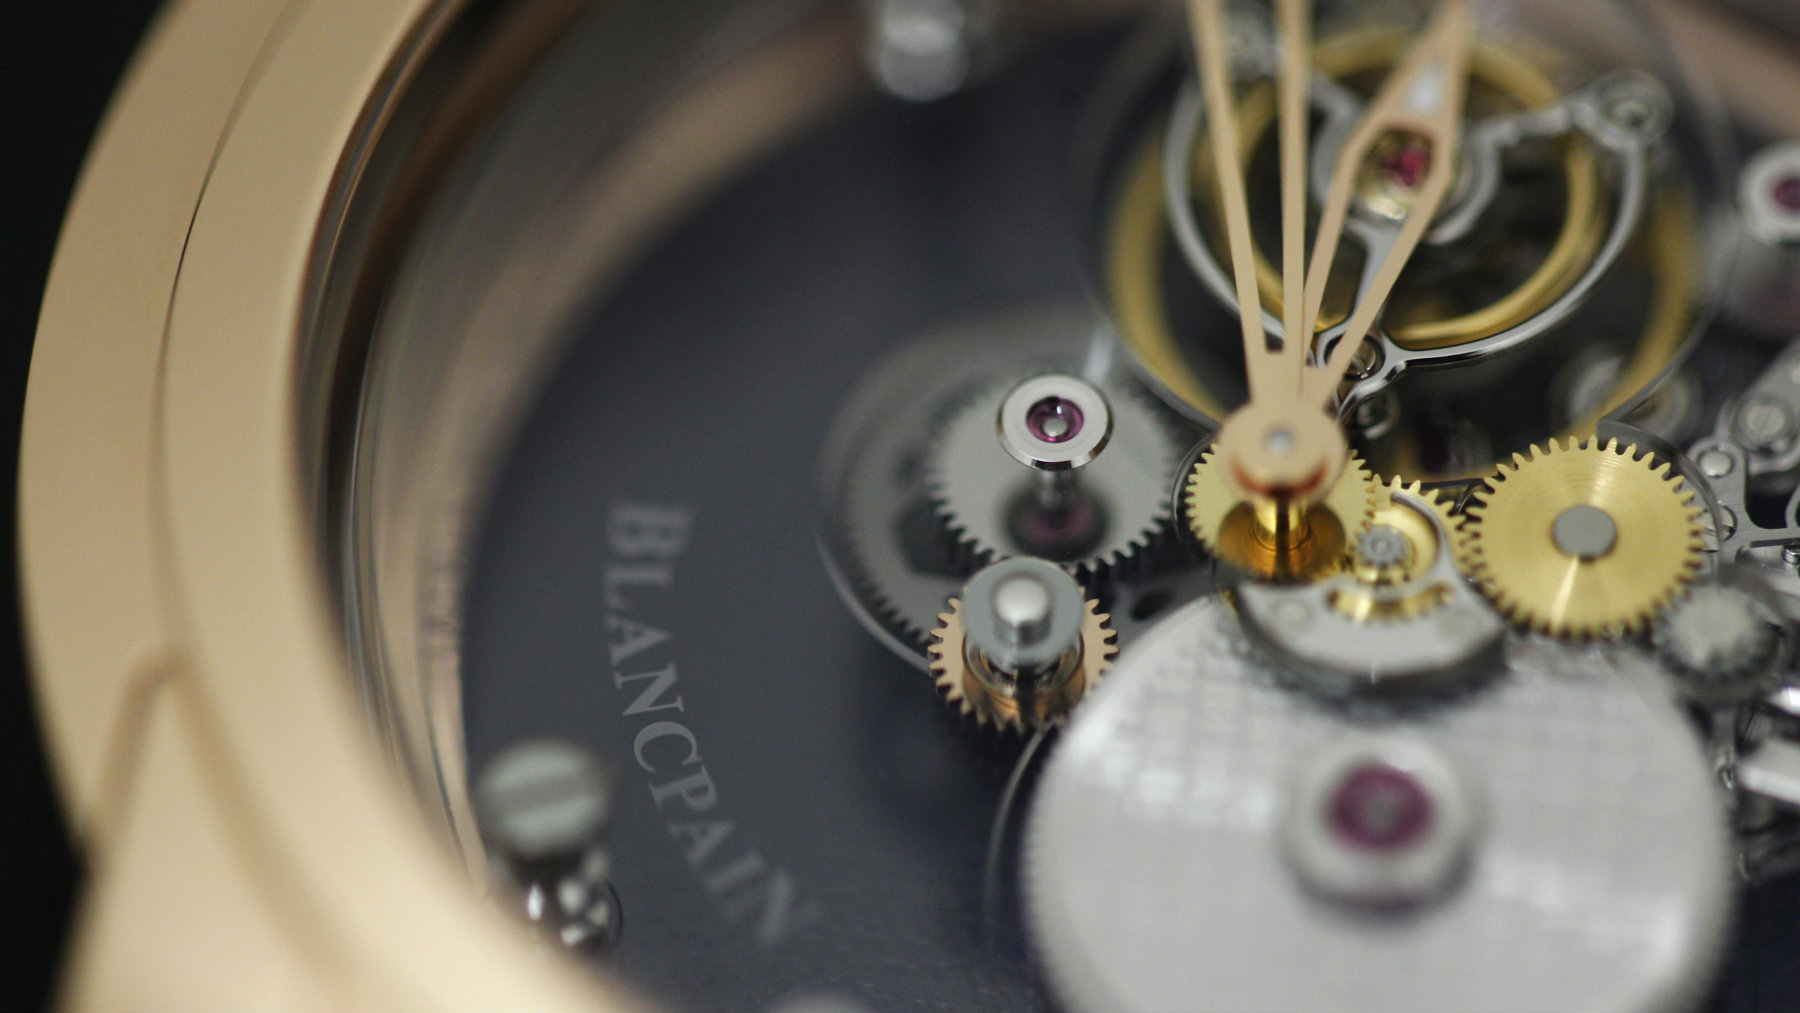 A Blancpain logo is seen on a watch displayed on the watchmaker's showcase at the 2010 Baselworld in Basel, Switzerland.